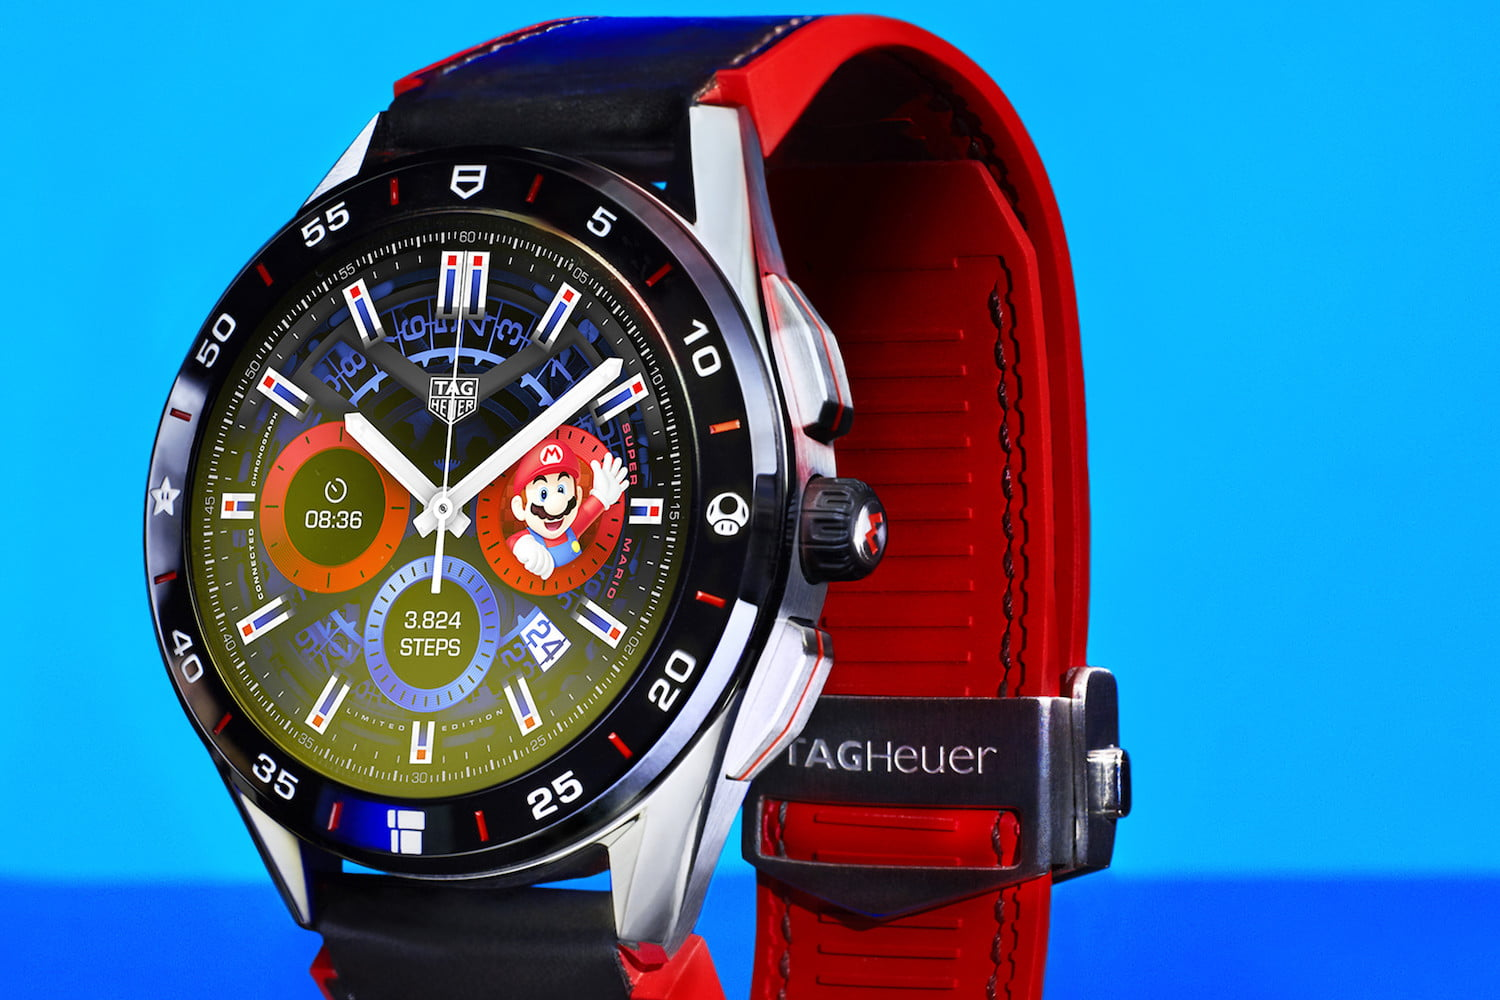 Tag Heuer's new limited edition smartwatch says it's Mario time, all the time